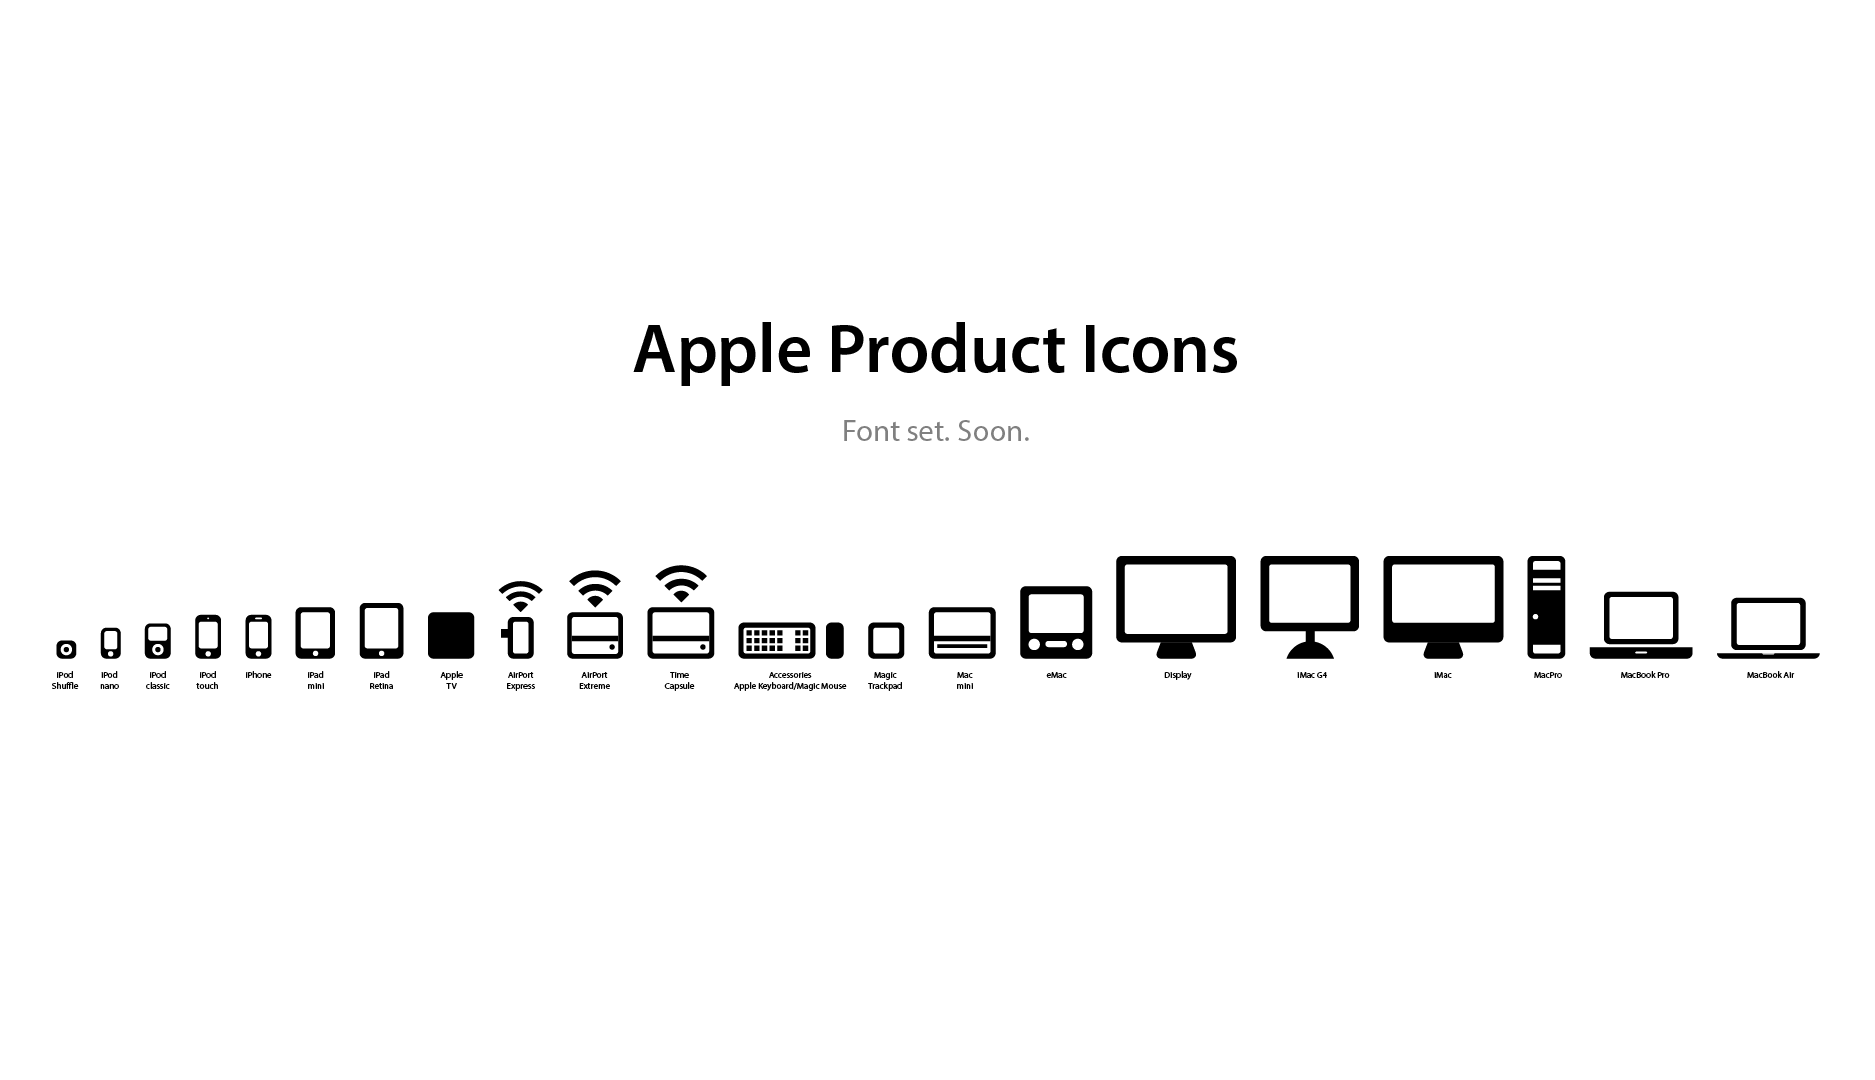 Apple products apple products png - Apple Product Icons Font Set